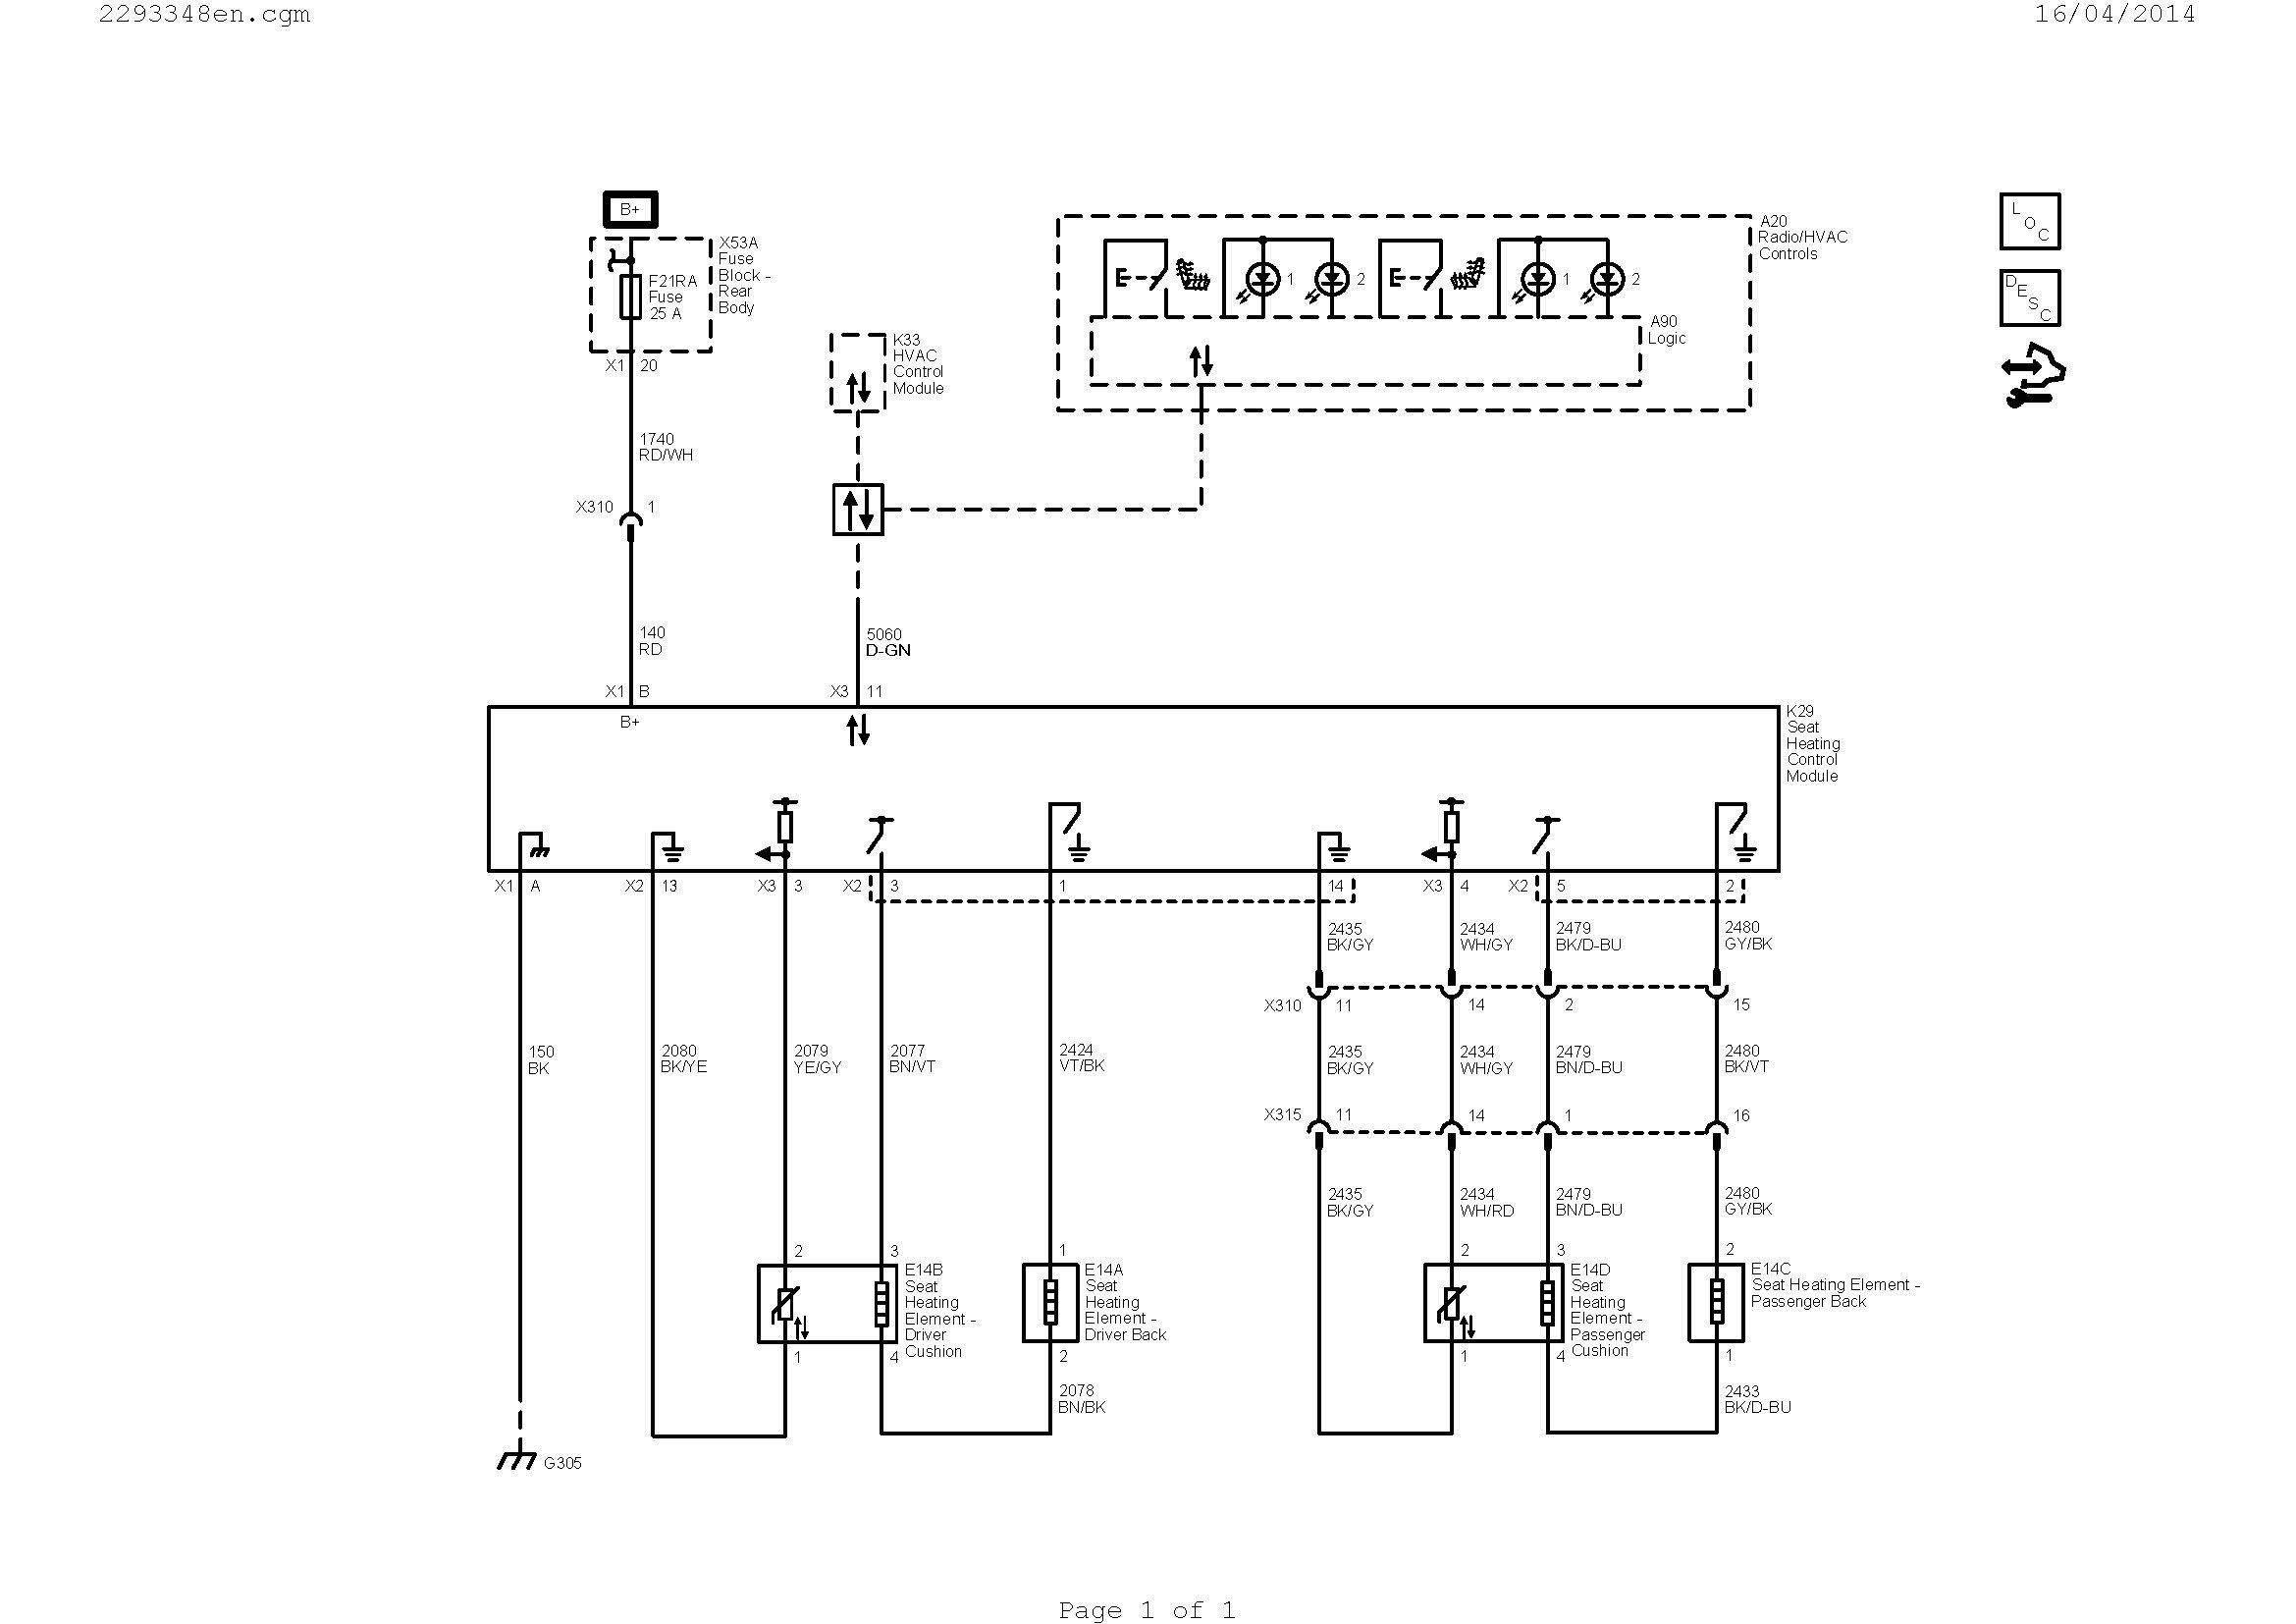 intrinsically safe barrier wiring diagram Download-ac thermostat wiring diagram Collection Wiring A Ac thermostat Diagram New Wiring Diagram Ac Valid 8-t